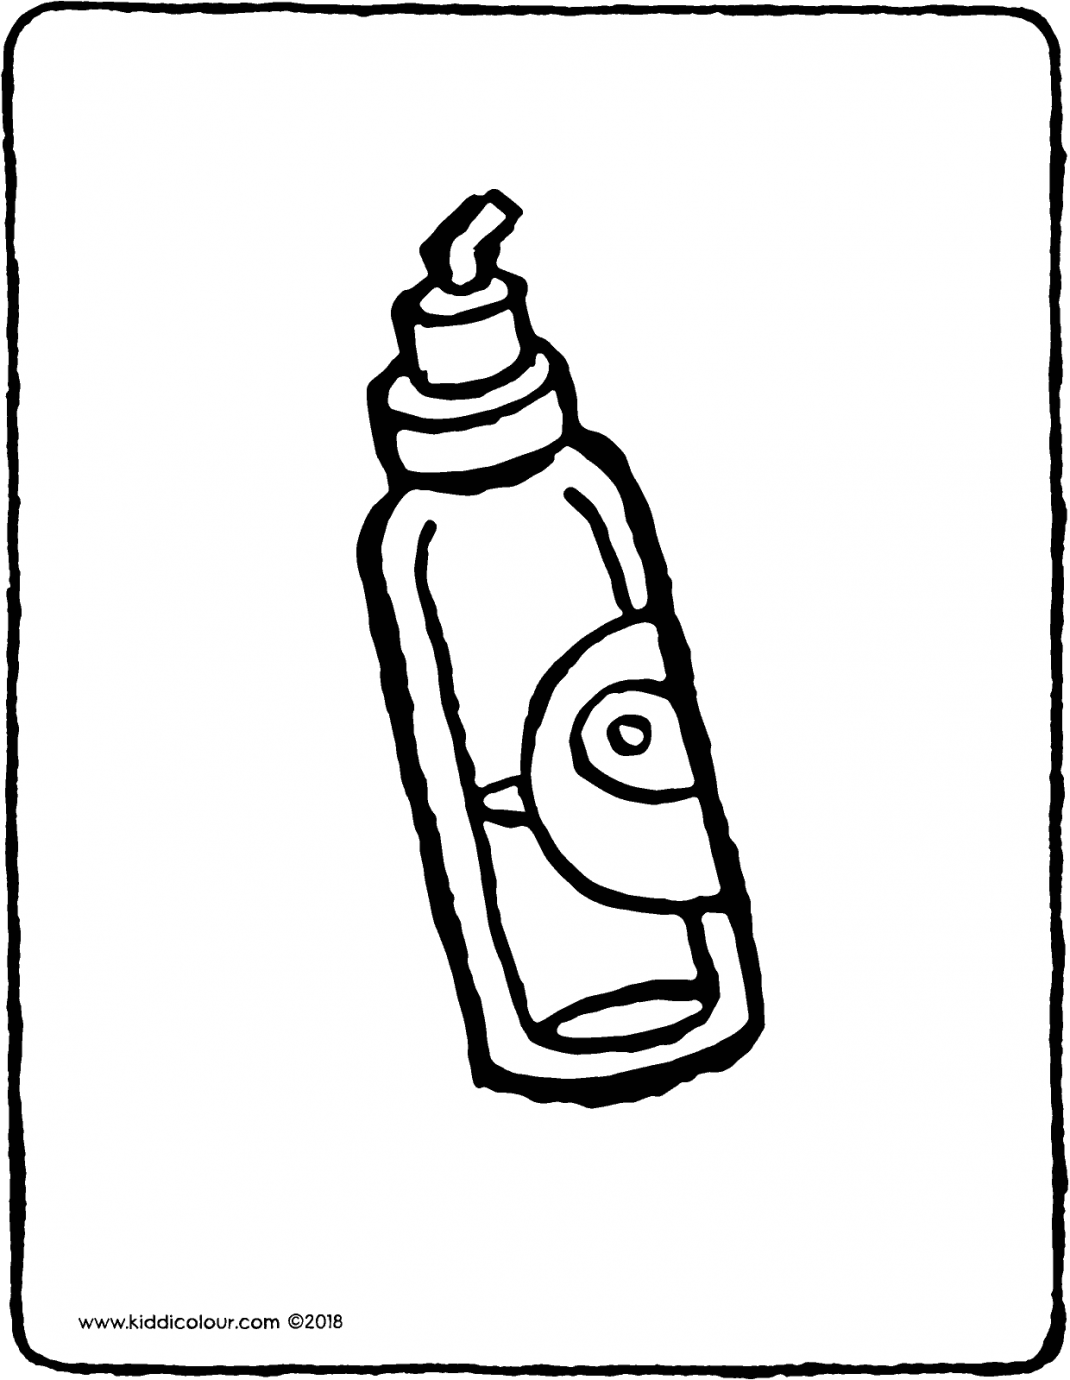 bottle of olive oil colouring page drawing picture 01V